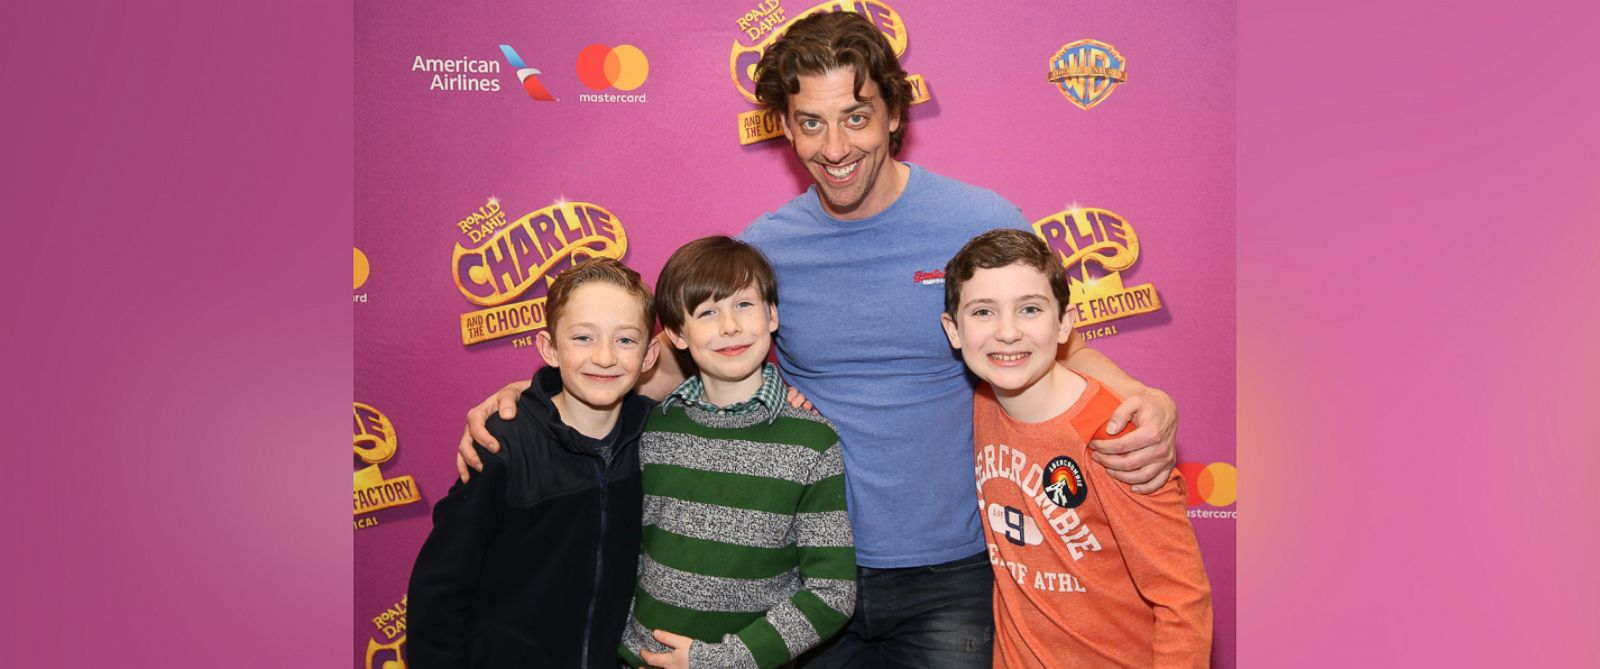 charlie and the chocolate factory preparing for broadway debut photo ryan foust jake ryan flynn christian borle and ryan sell attend the